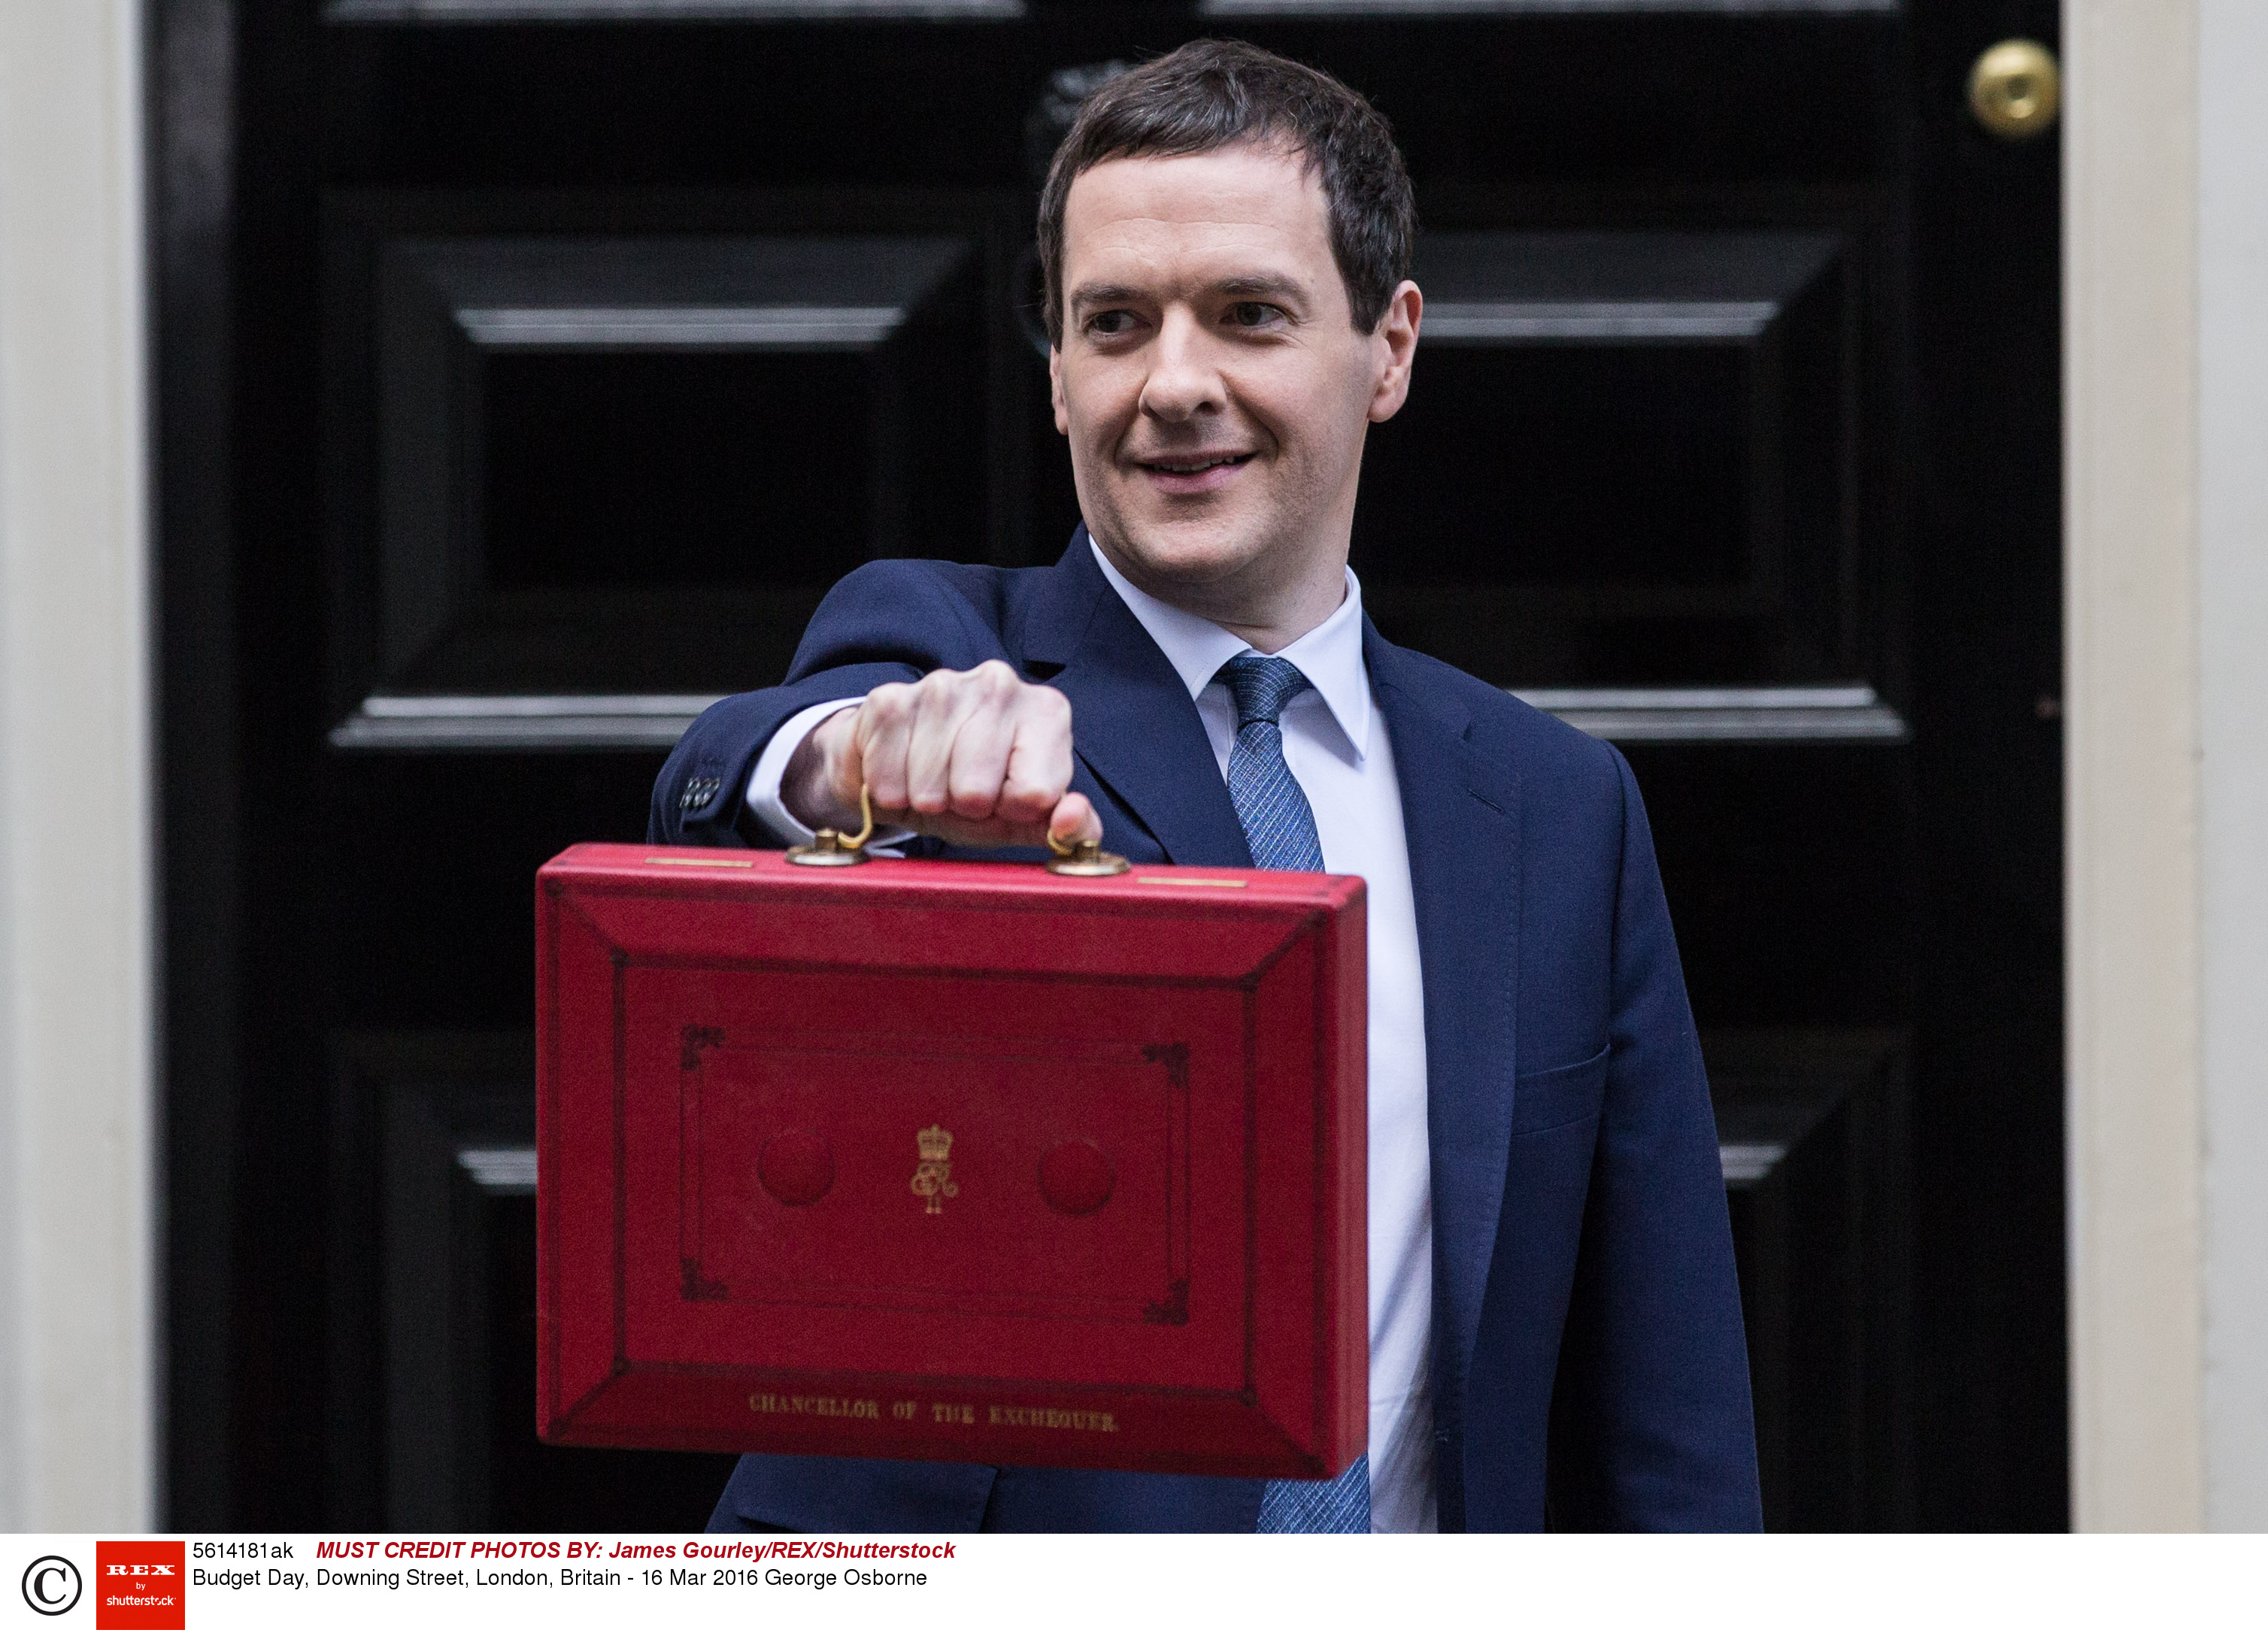 The three most appealing changes from the budget